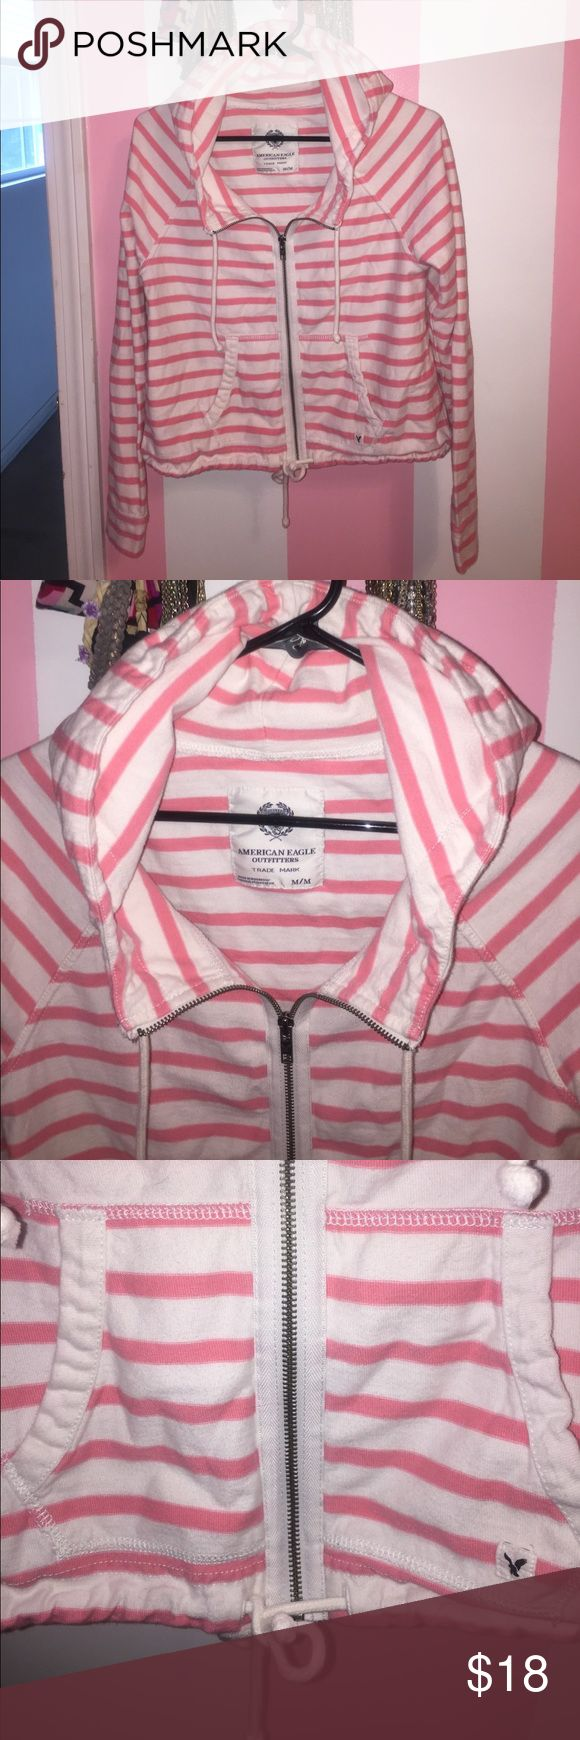 AEO loose casual striped zip up This is one of my favorite zip ups I own! It doesn't fit anymore but someone else would for sure enjoy it. It is great quality fabric. Has a drawstring tie at the bottom. The neckline is relaxed and also has ties. 100% cotton. American Eagle Outfitters Tops Sweatshirts & Hoodies